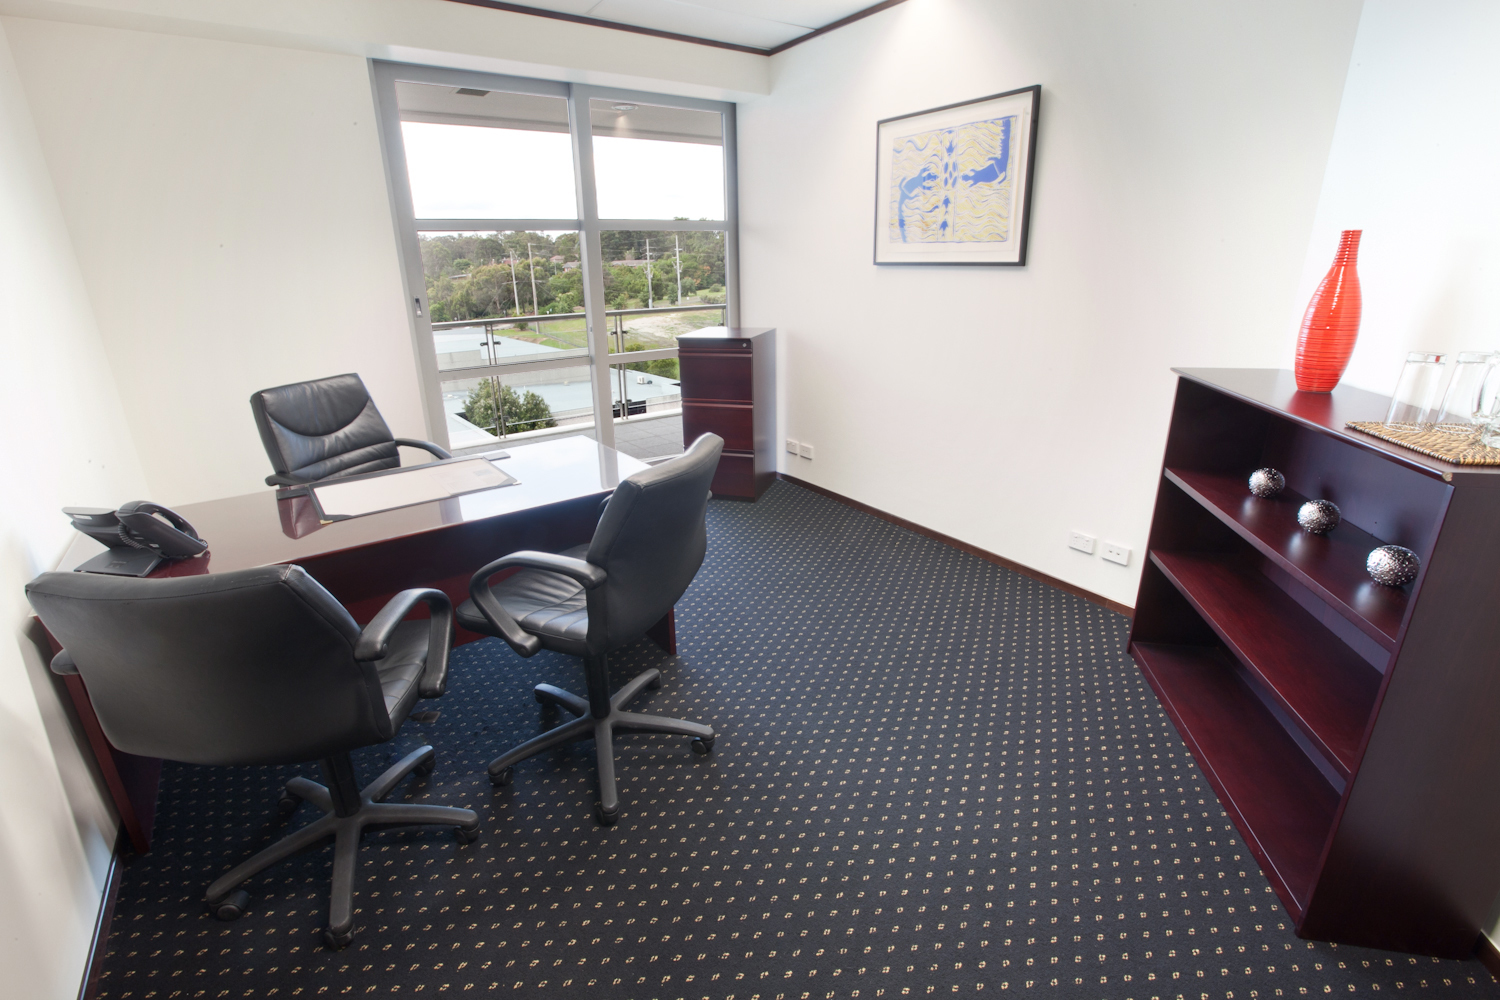 PRIME OFFICES AVAILABLE LOCATED IN THE HEART OF NORWEST BUSINESS PARK